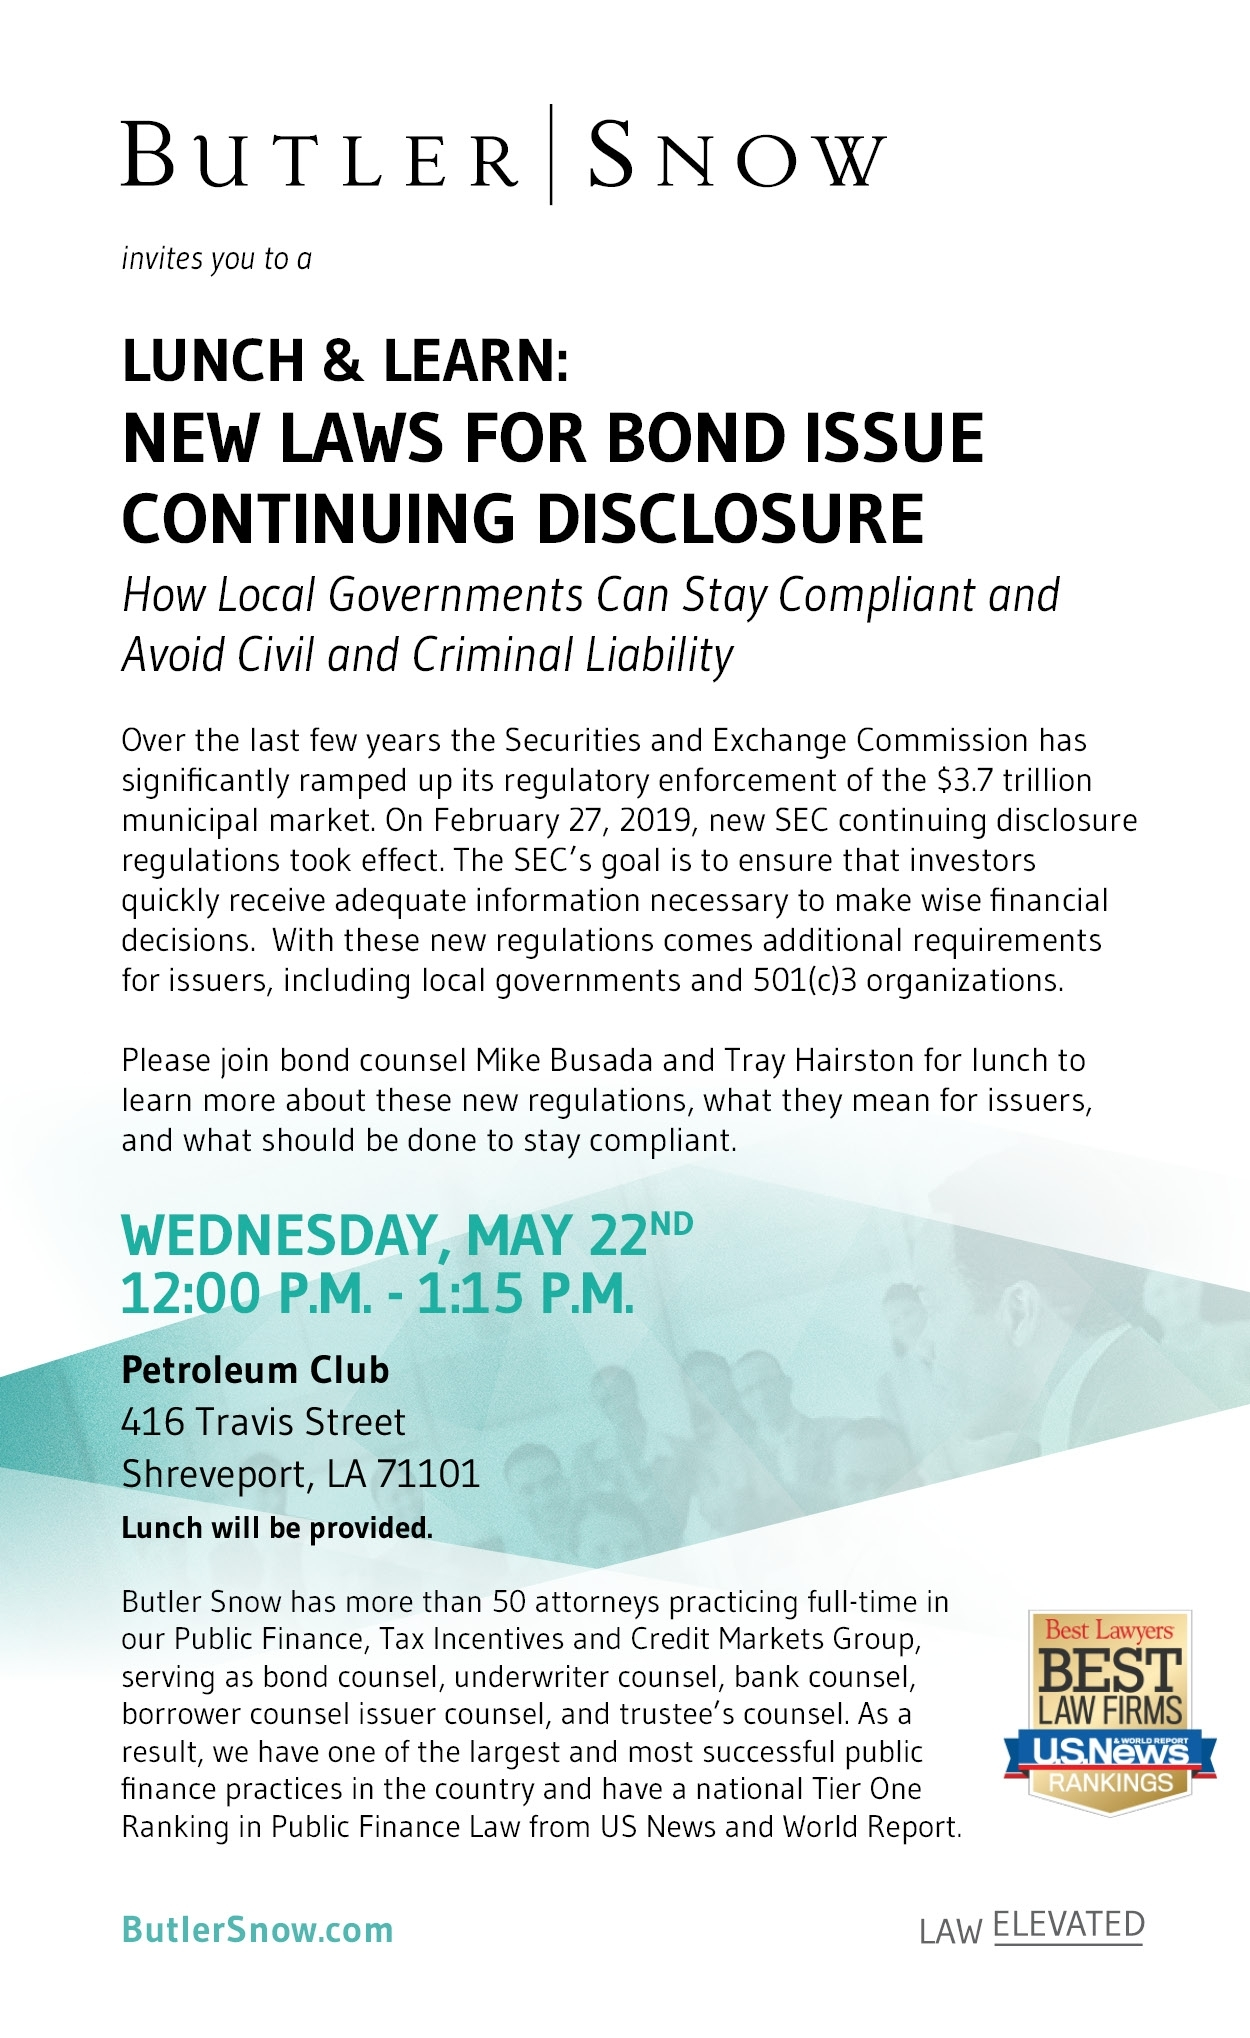 Shreveport Lunch & Learn: New Rules For Bond Issue Continuing Disclosure - Butler Snow